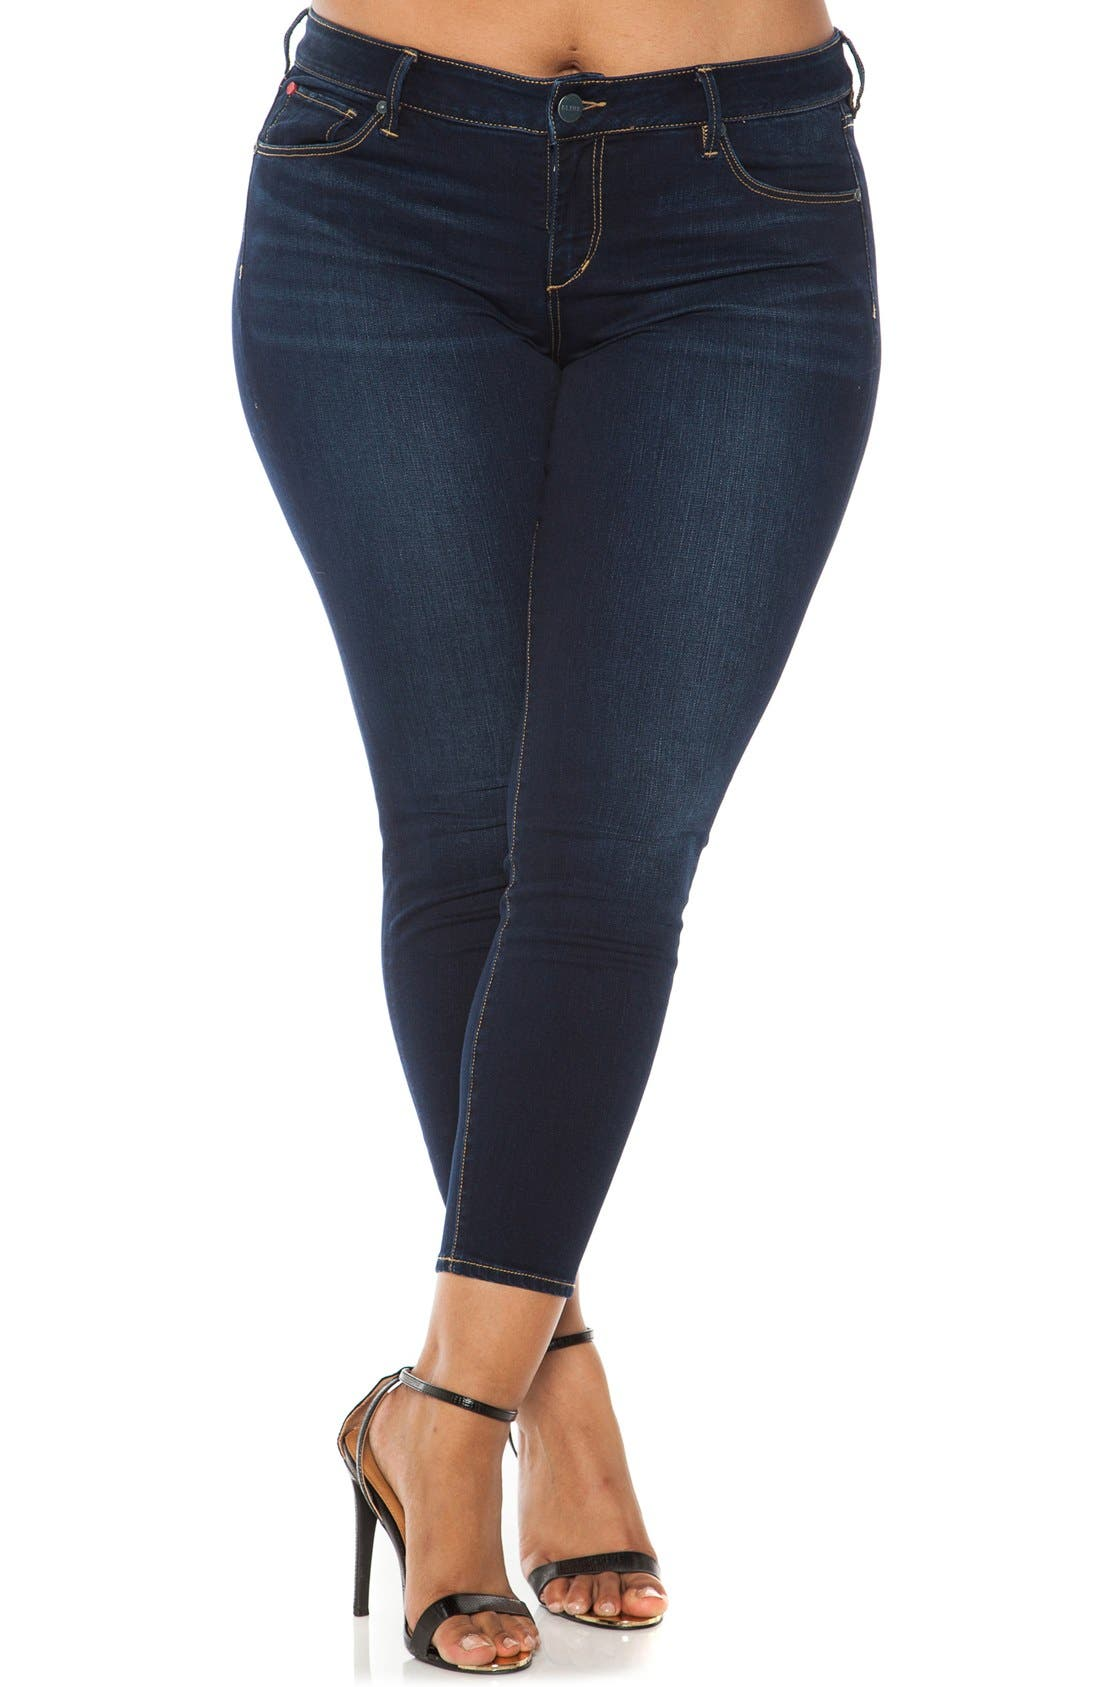 Main Image - SLINK Jeans Stretch Ankle Skinny Jeans (Plus Size)